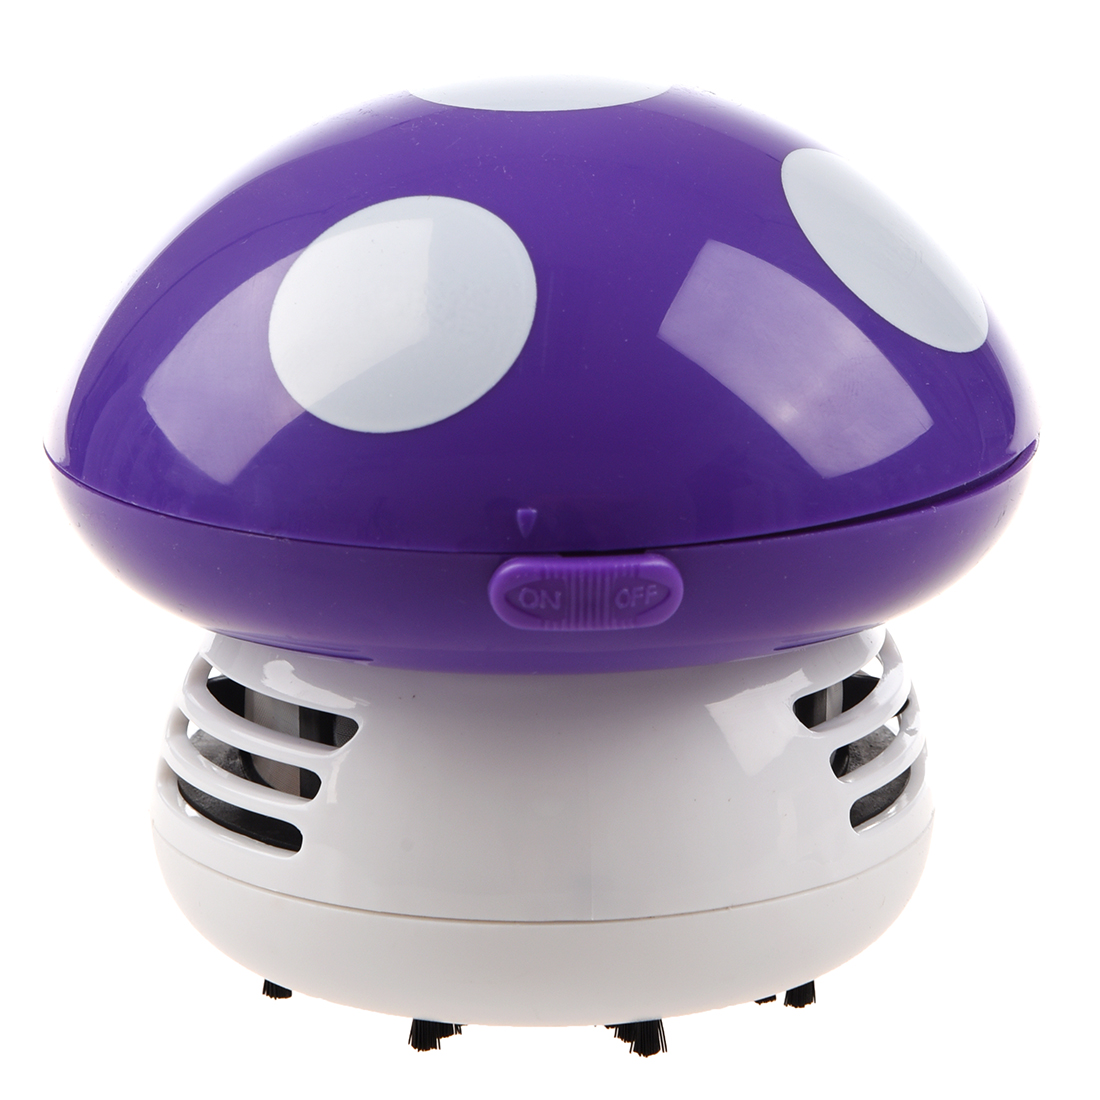 New Home Handheld Mushroom Shaped Mini Vacuum Cleaner Car Laptop keyboard Desktop Dust cleaner-purple